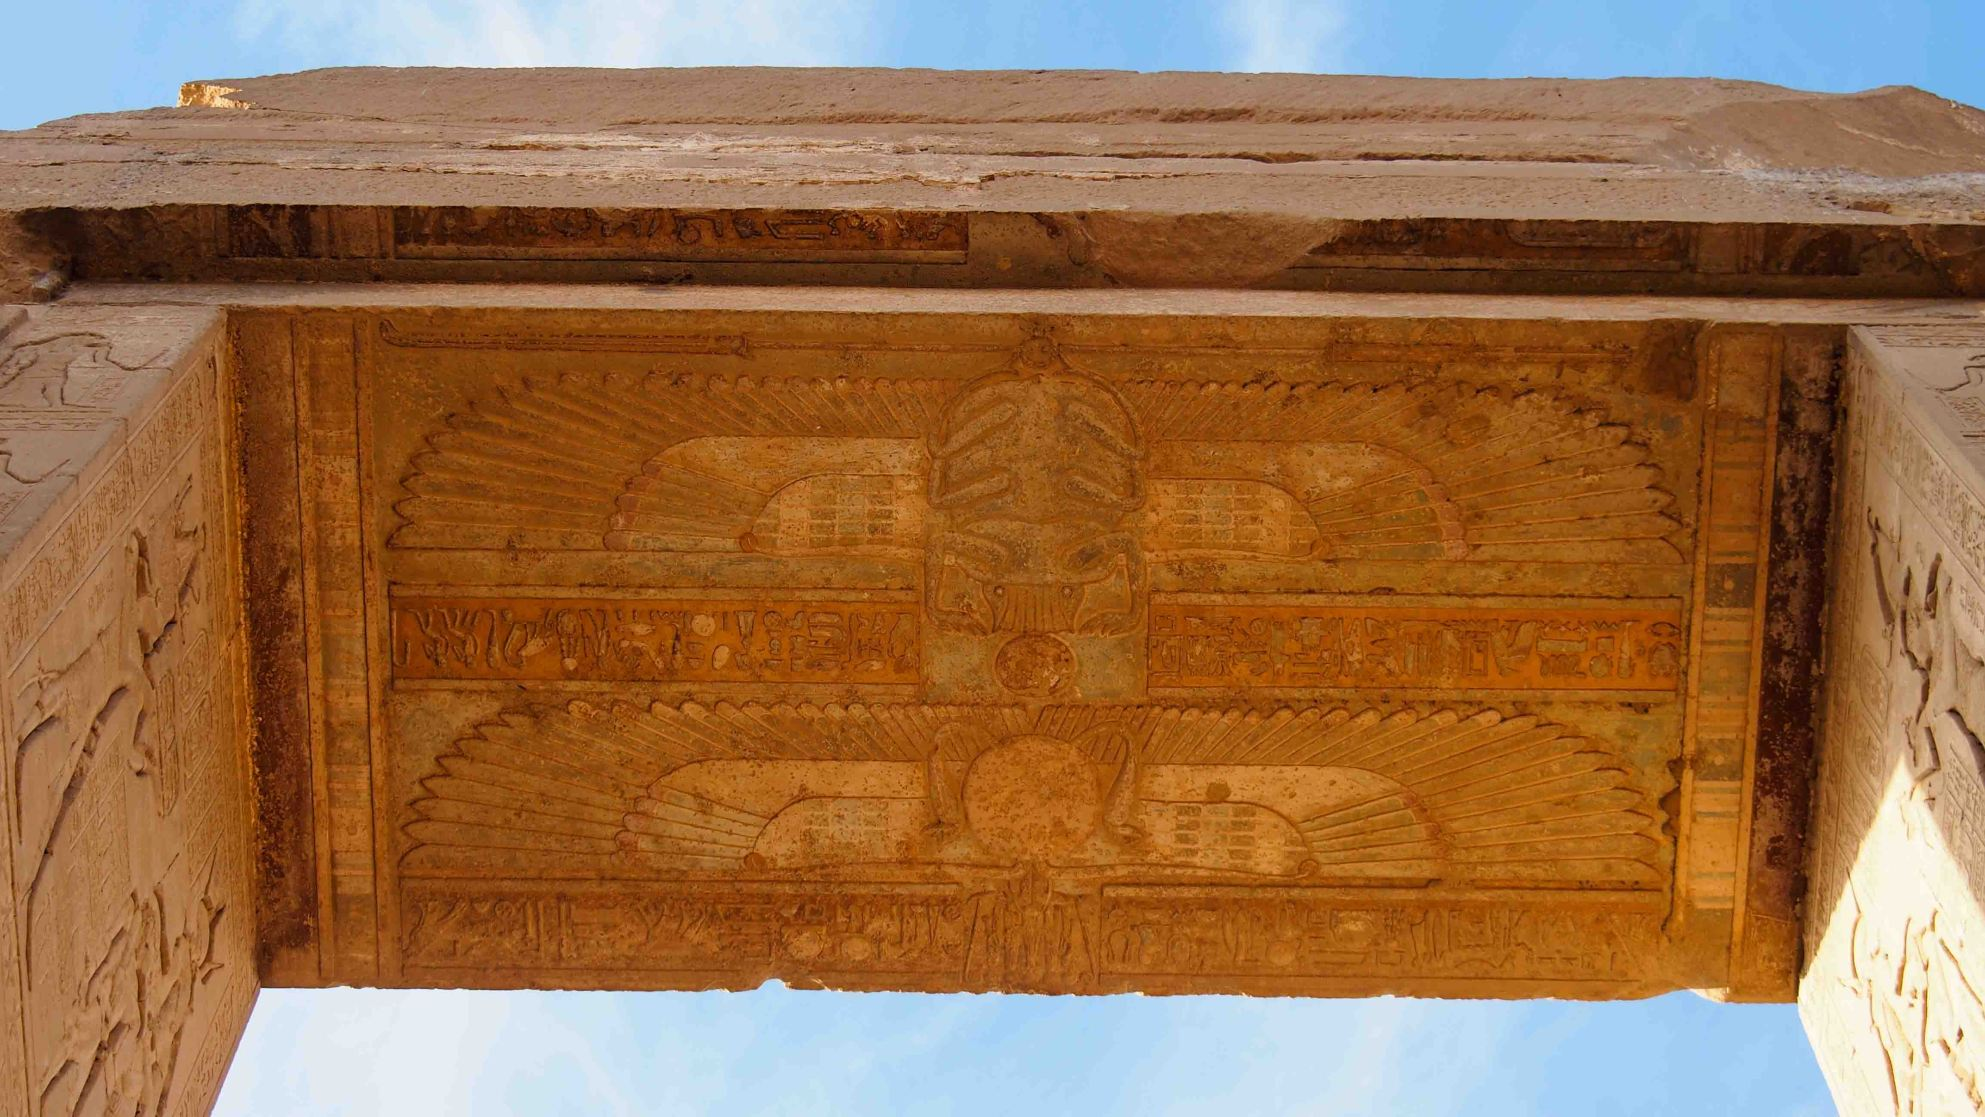 excursion-templo-dendera-egipto